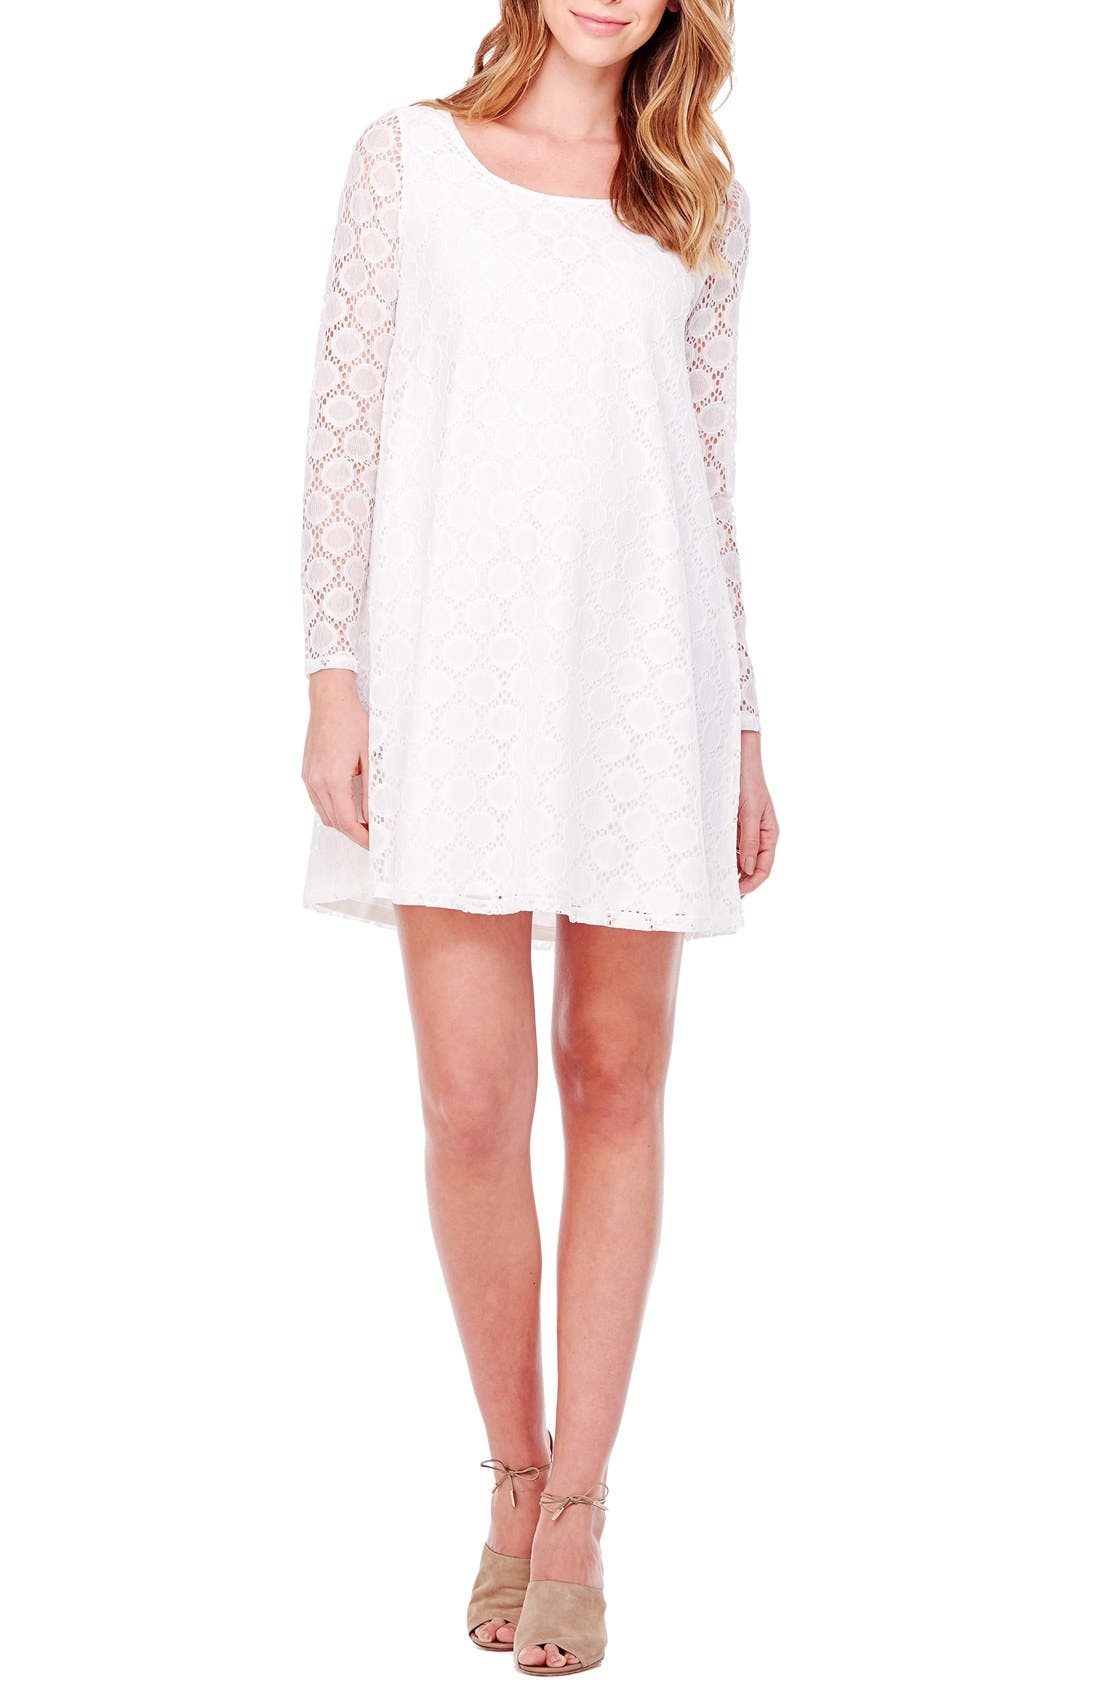 Ingrid & Isabel Dot Lace Maternity Dress,                         Main,                         color, Bright White